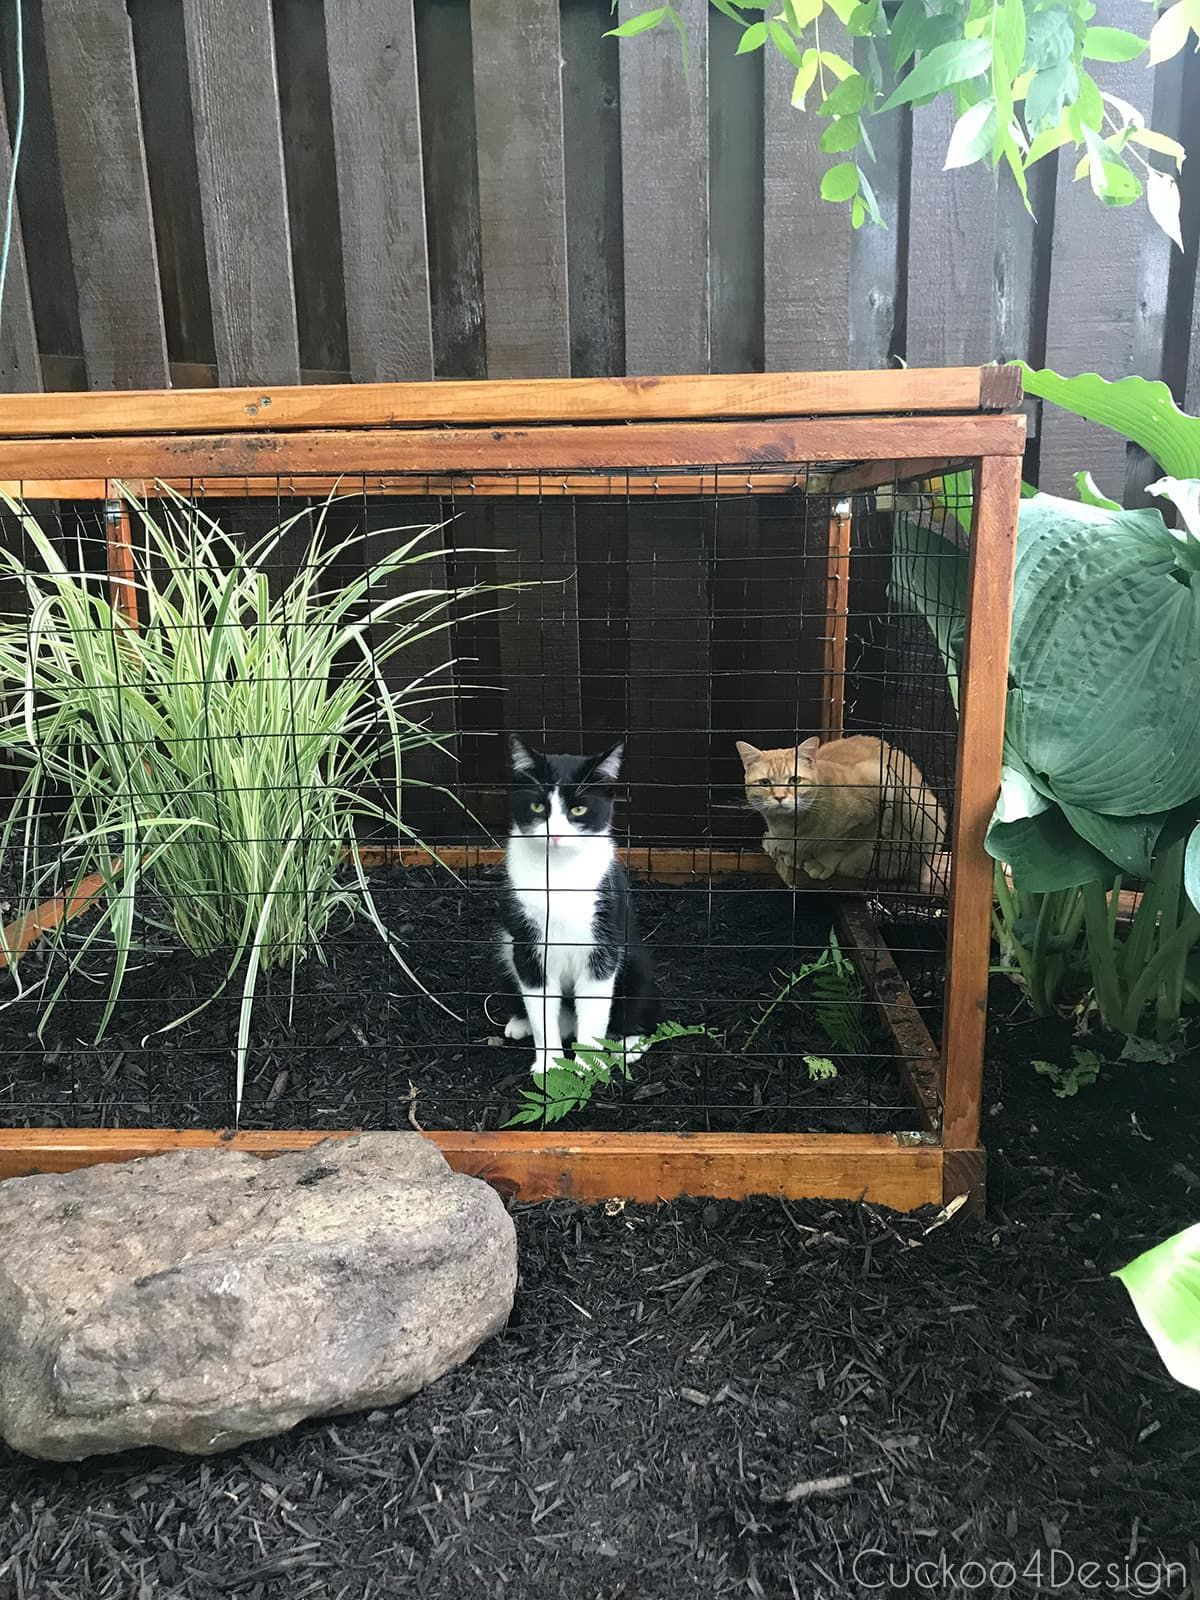 Outdoor Enclosure At The End Of The Tunnel